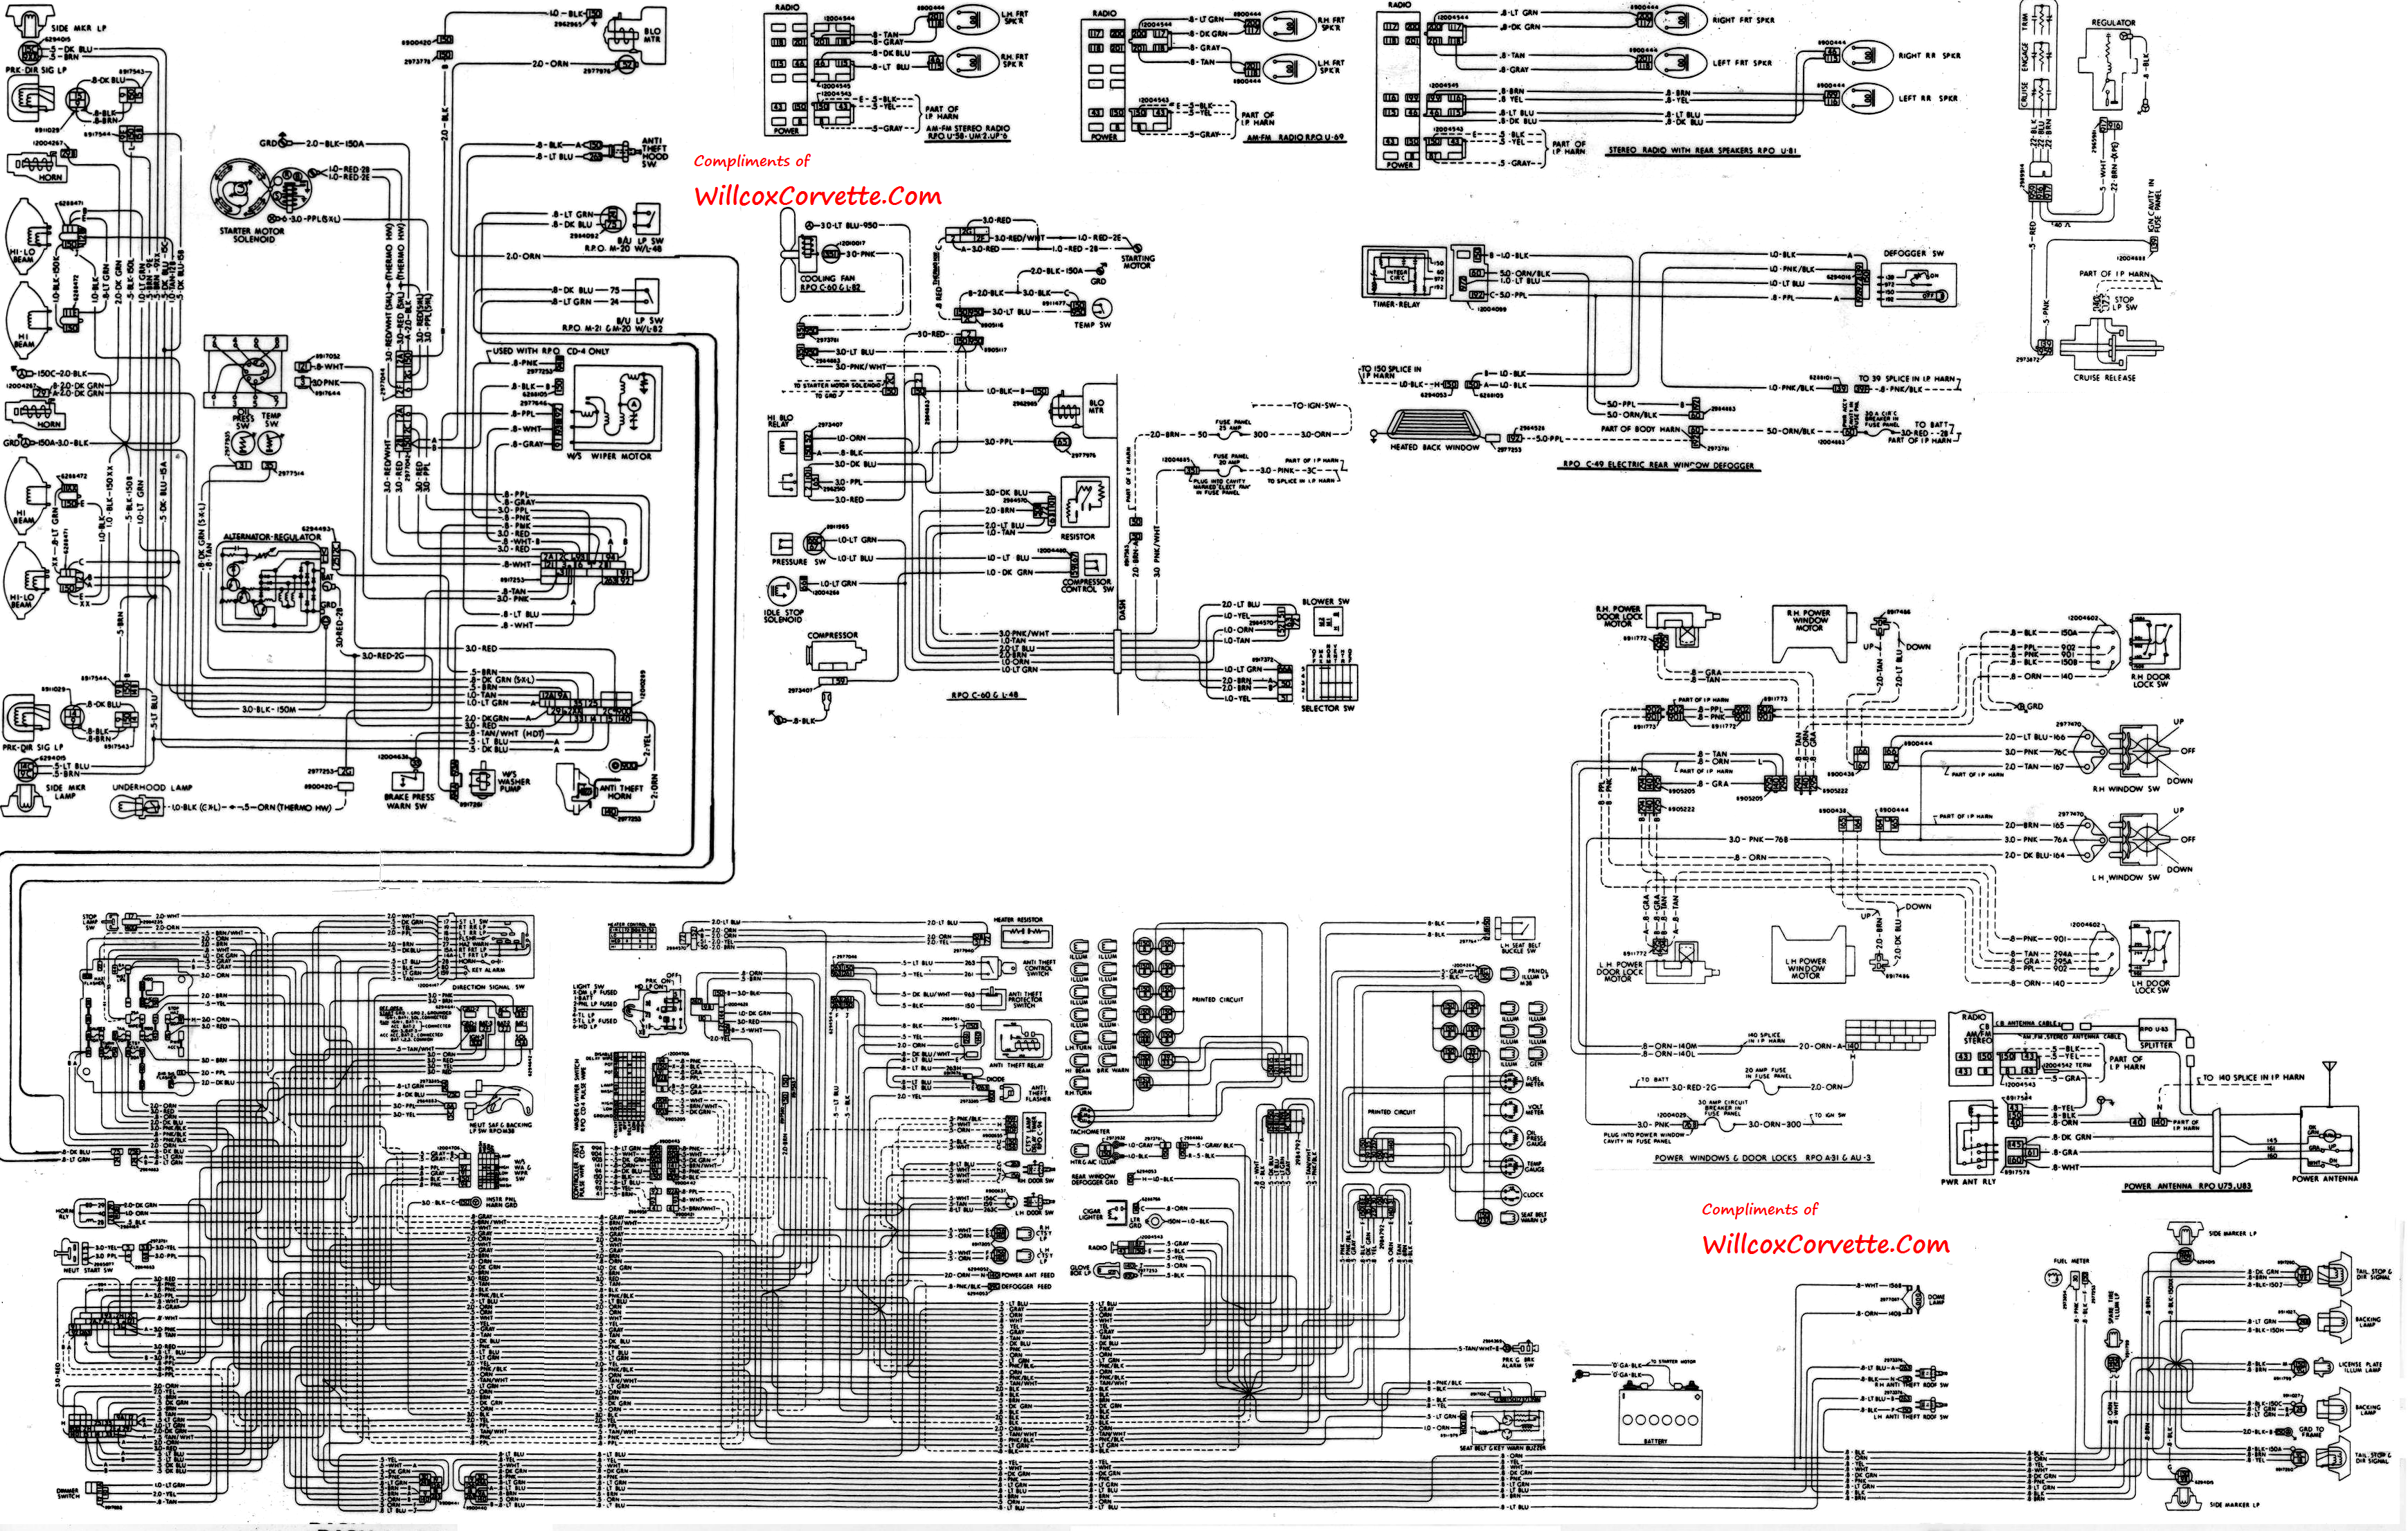 1979 wire diagram corvette fuse box diagram corvette free wiring diagrams 1968 corvette wiring diagram free at nearapp.co